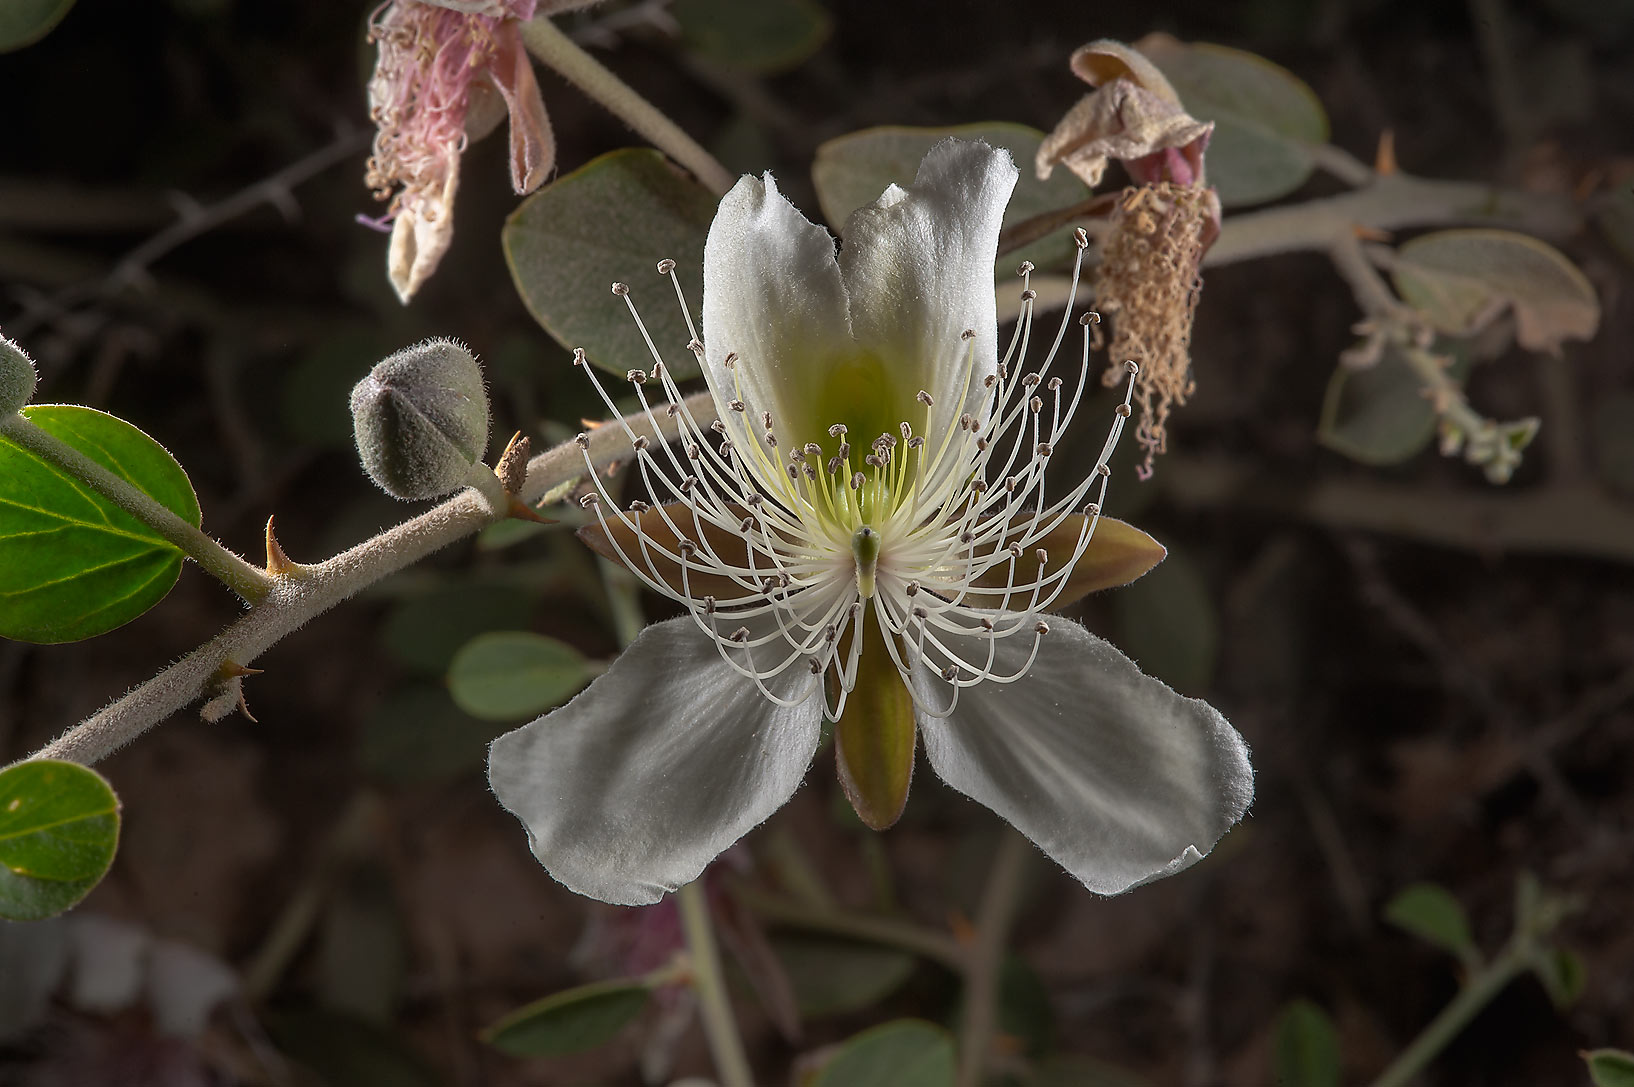 Butterfly shaped flower of Caper plant (Capparis...Bin Husayn near Simaisma. Qatar